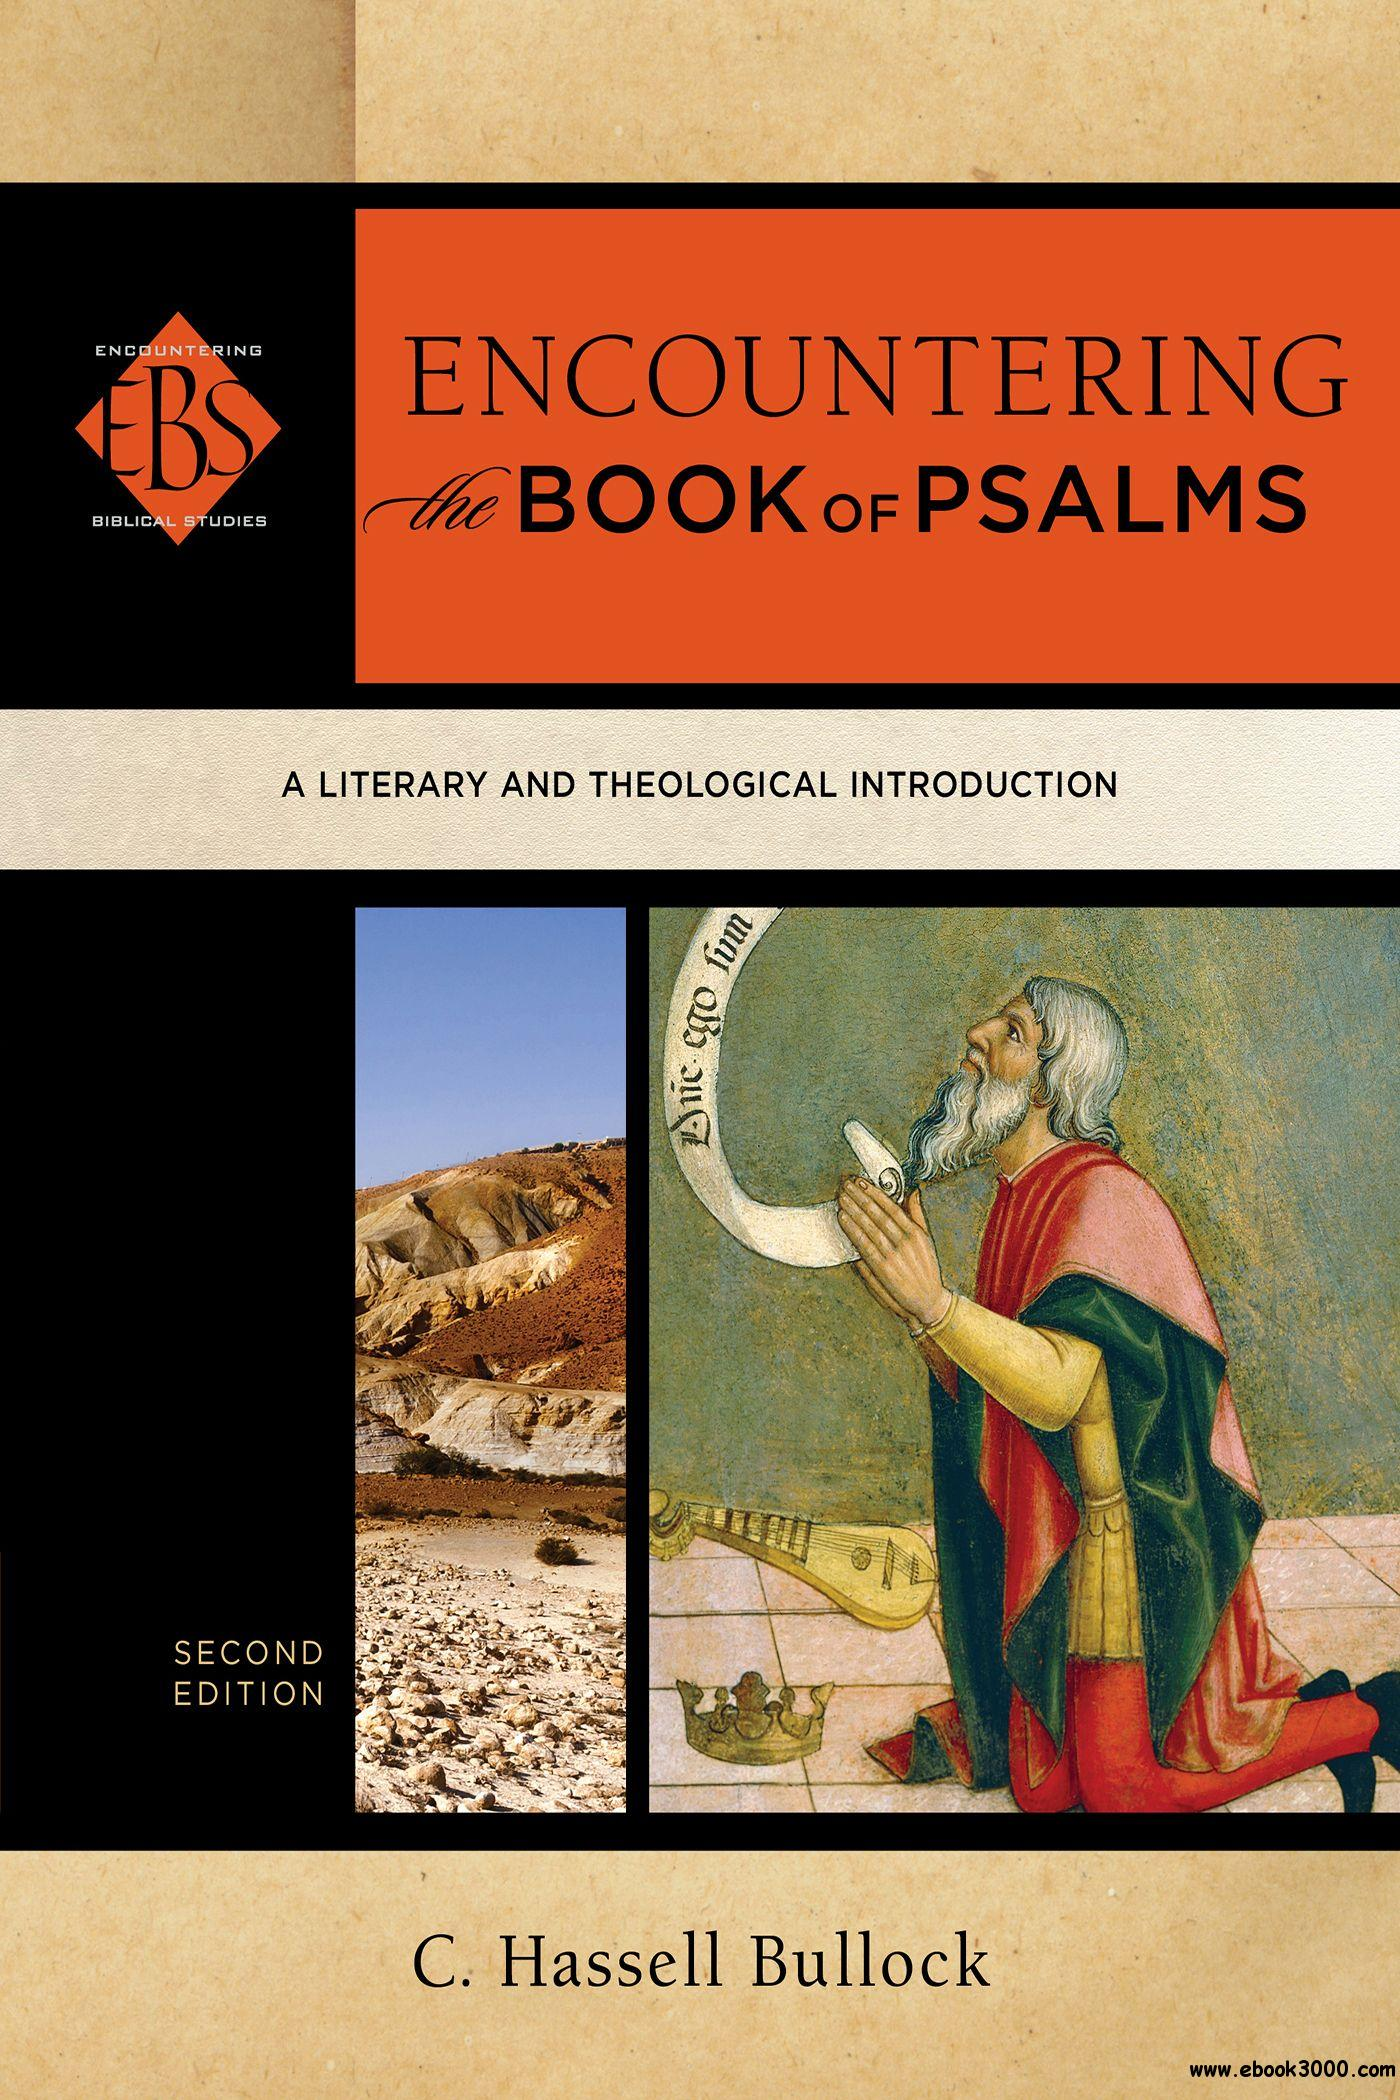 Encountering the Book of Psalms (Encountering Biblical Studies): A Literary and Theological Introduction, 2nd Edition